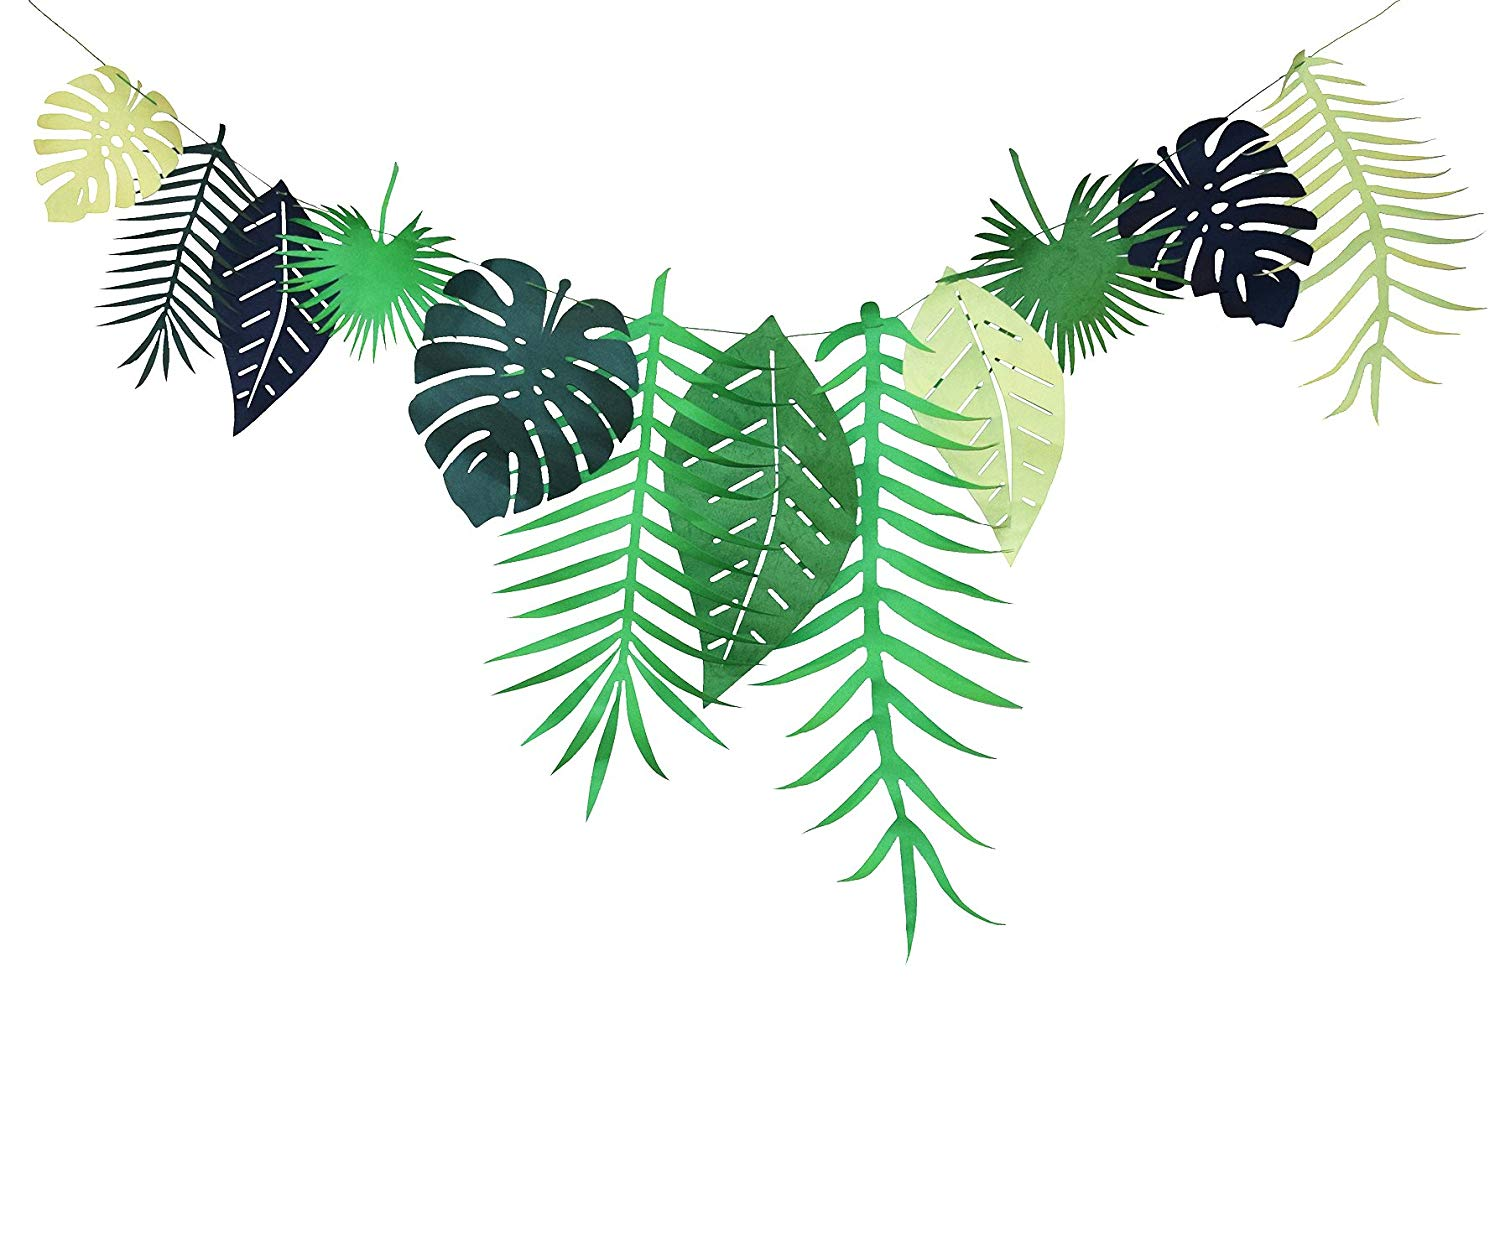 Luau clipart leaves, Luau leaves Transparent FREE for.